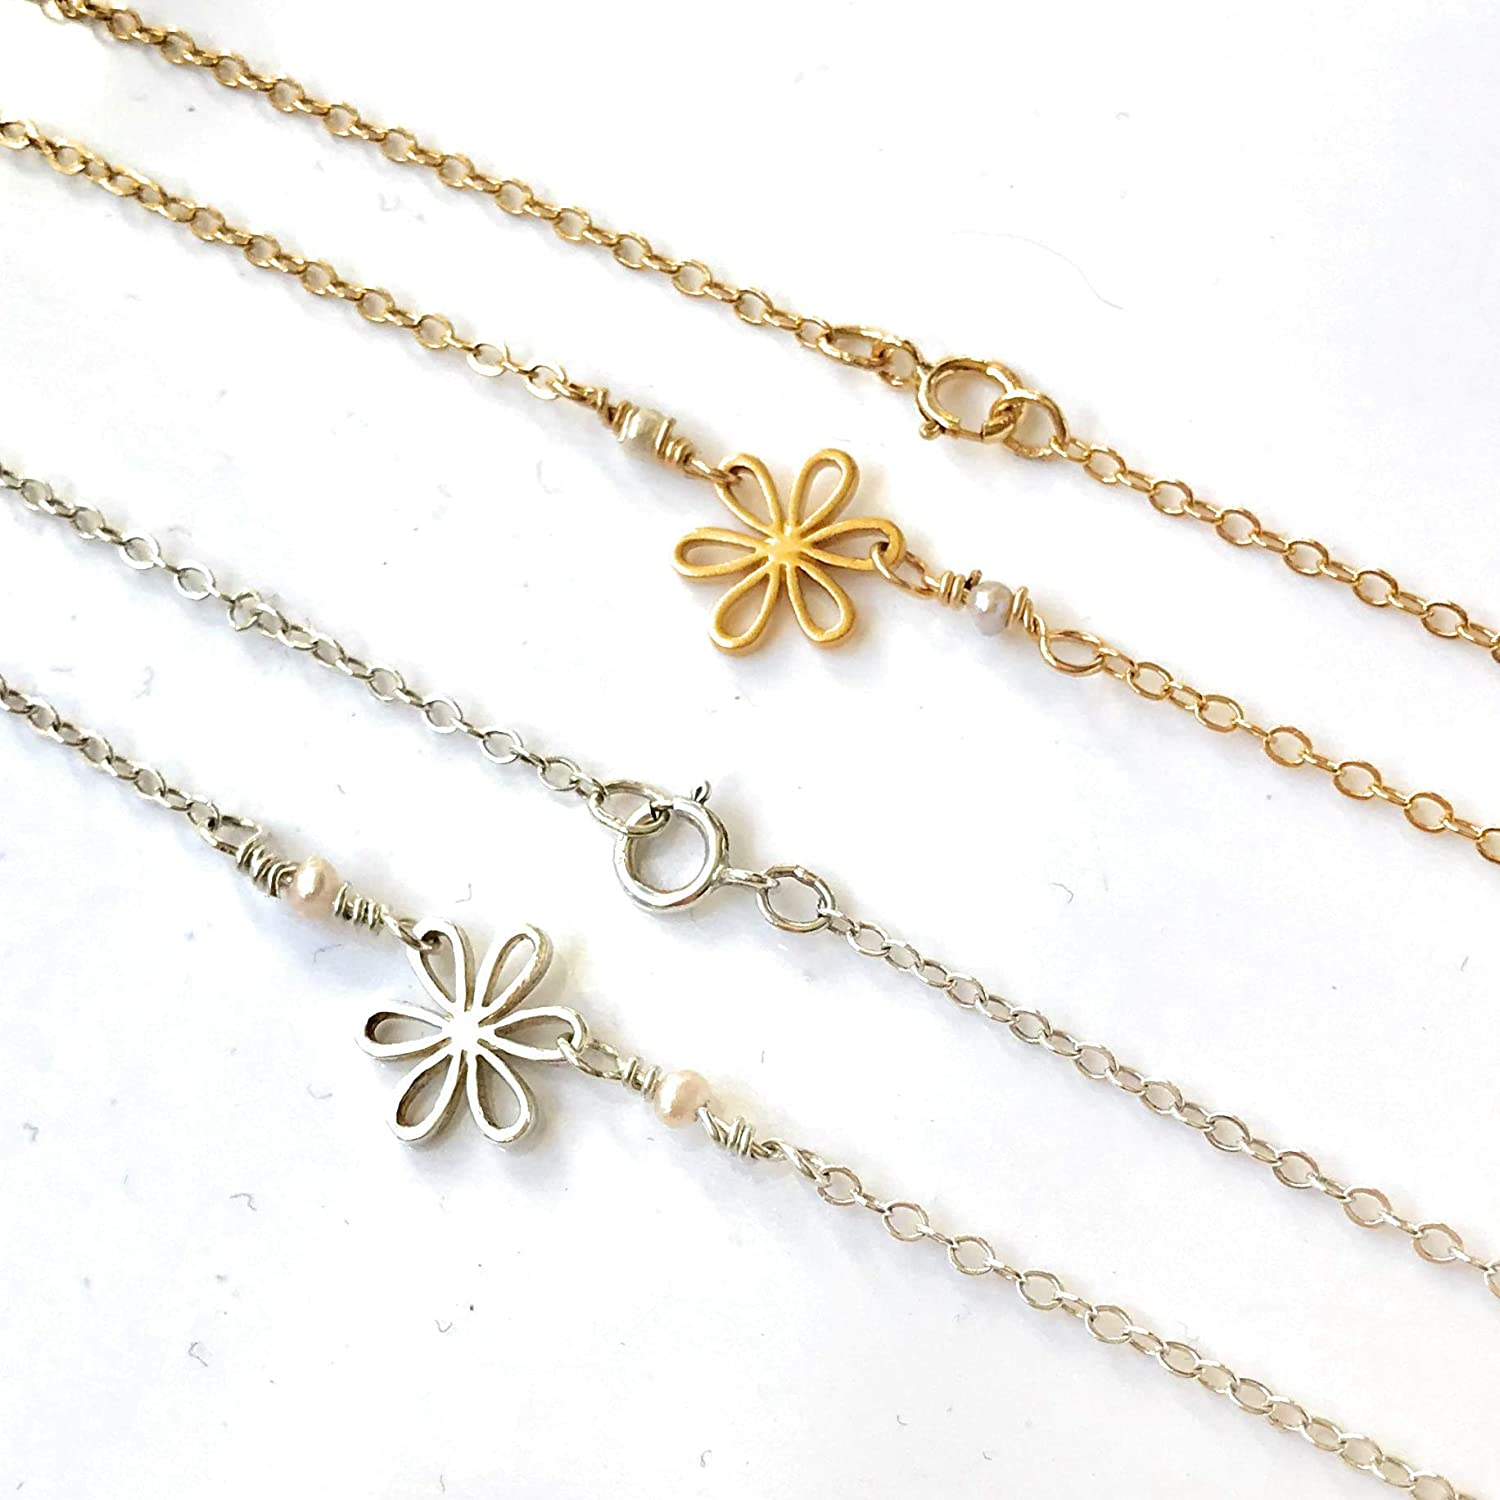 rose or white gold necklace solid 14k yellow Gold Daisy Spiral Flower pendant handmade in USA